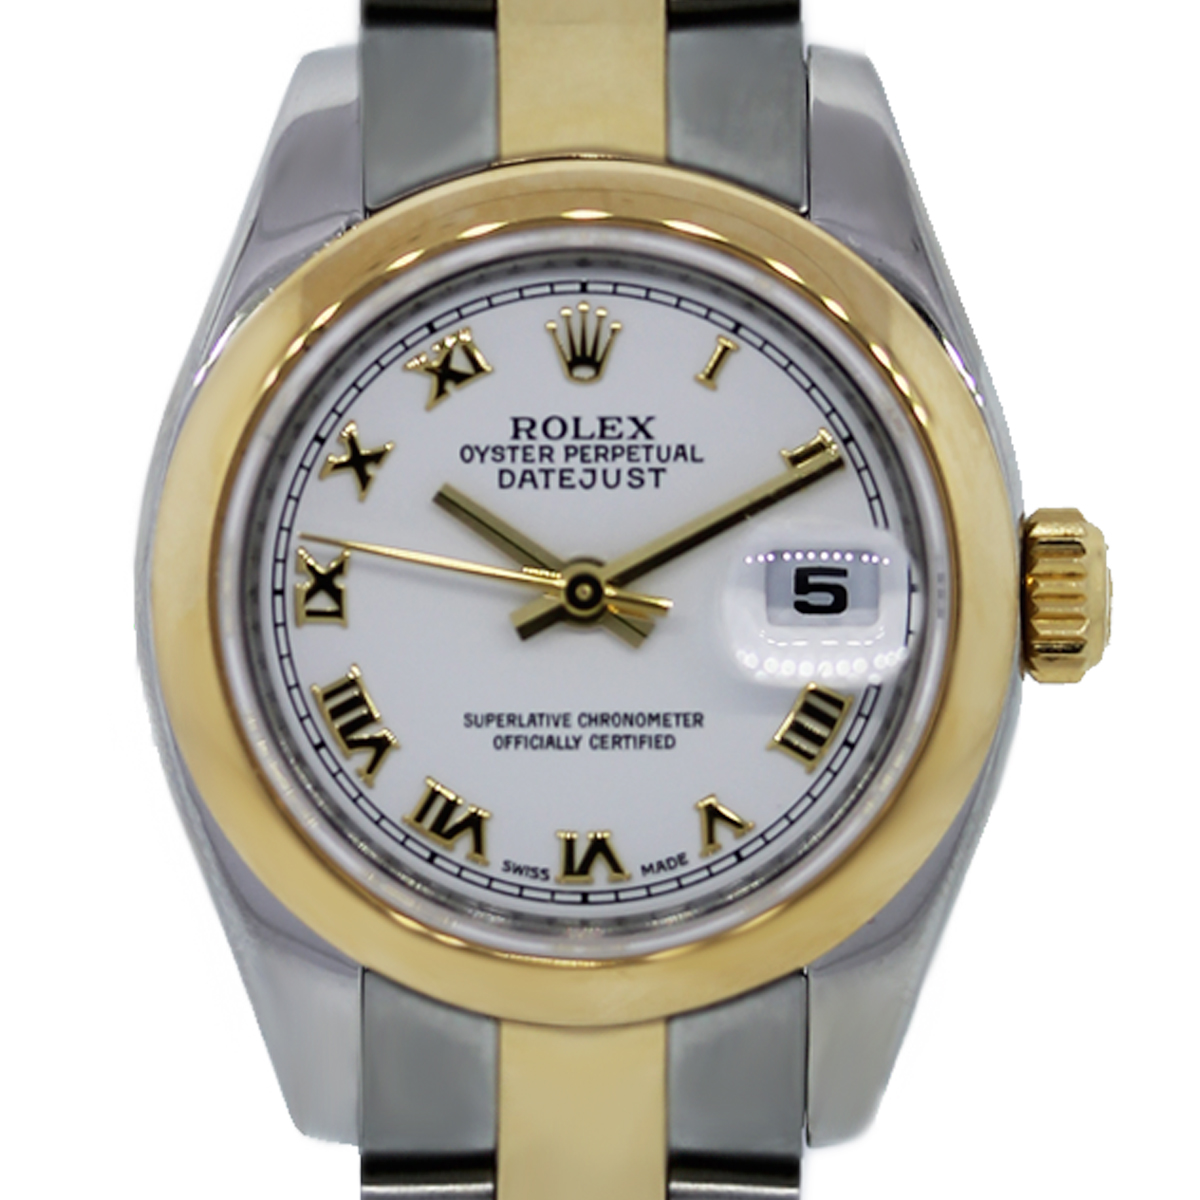 You are Viewing this Stunning Rolex Watch